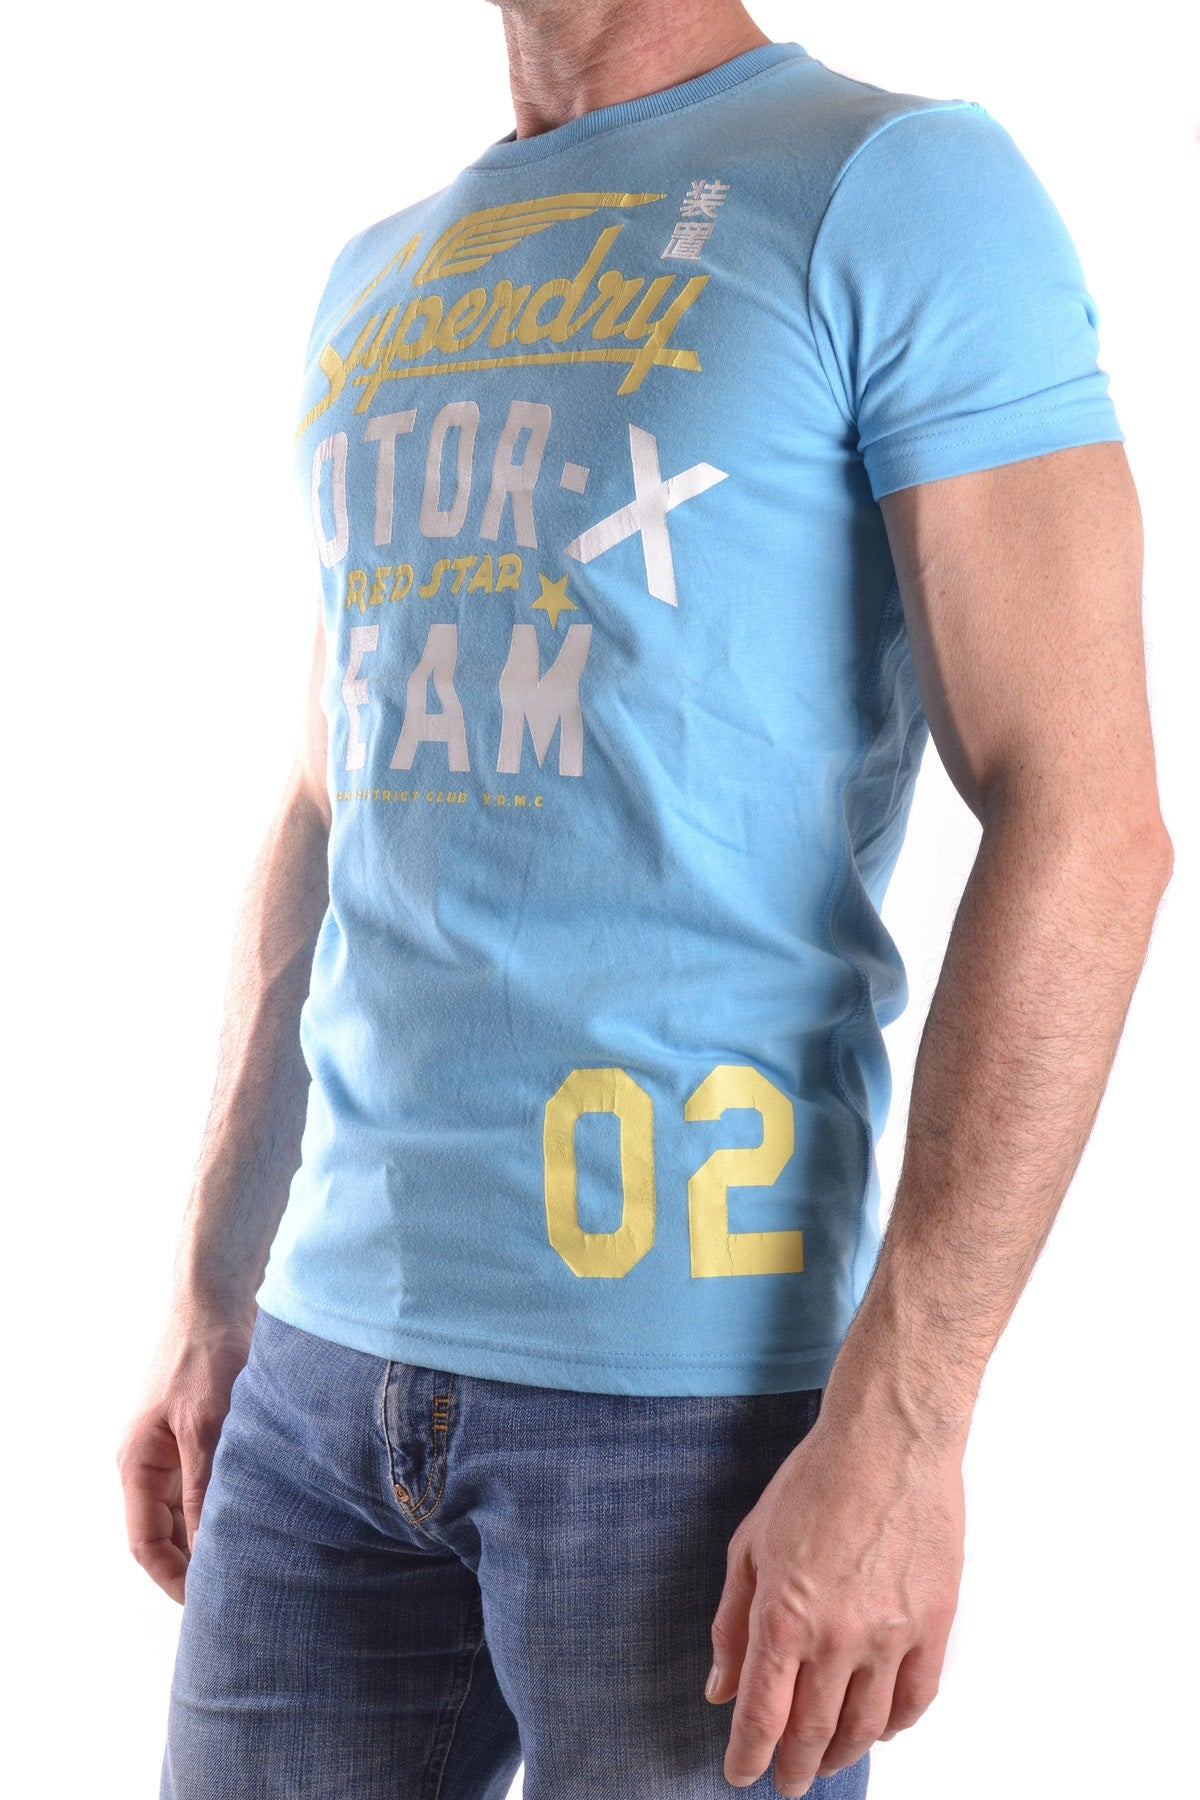 T-Shirt Superdry-Men's Fashion - Men's Clothing - Tops & Tees - T-Shirts-Product Details Composition: Cotton 65%, Polyester 35%Size: IntGender: ManMade In: TurcheySeason: Spring / SummerMain Color: HeavenlyClothing Type: T-ShirtTerms: New With LabelYear: 2017-Keyomi-Sook